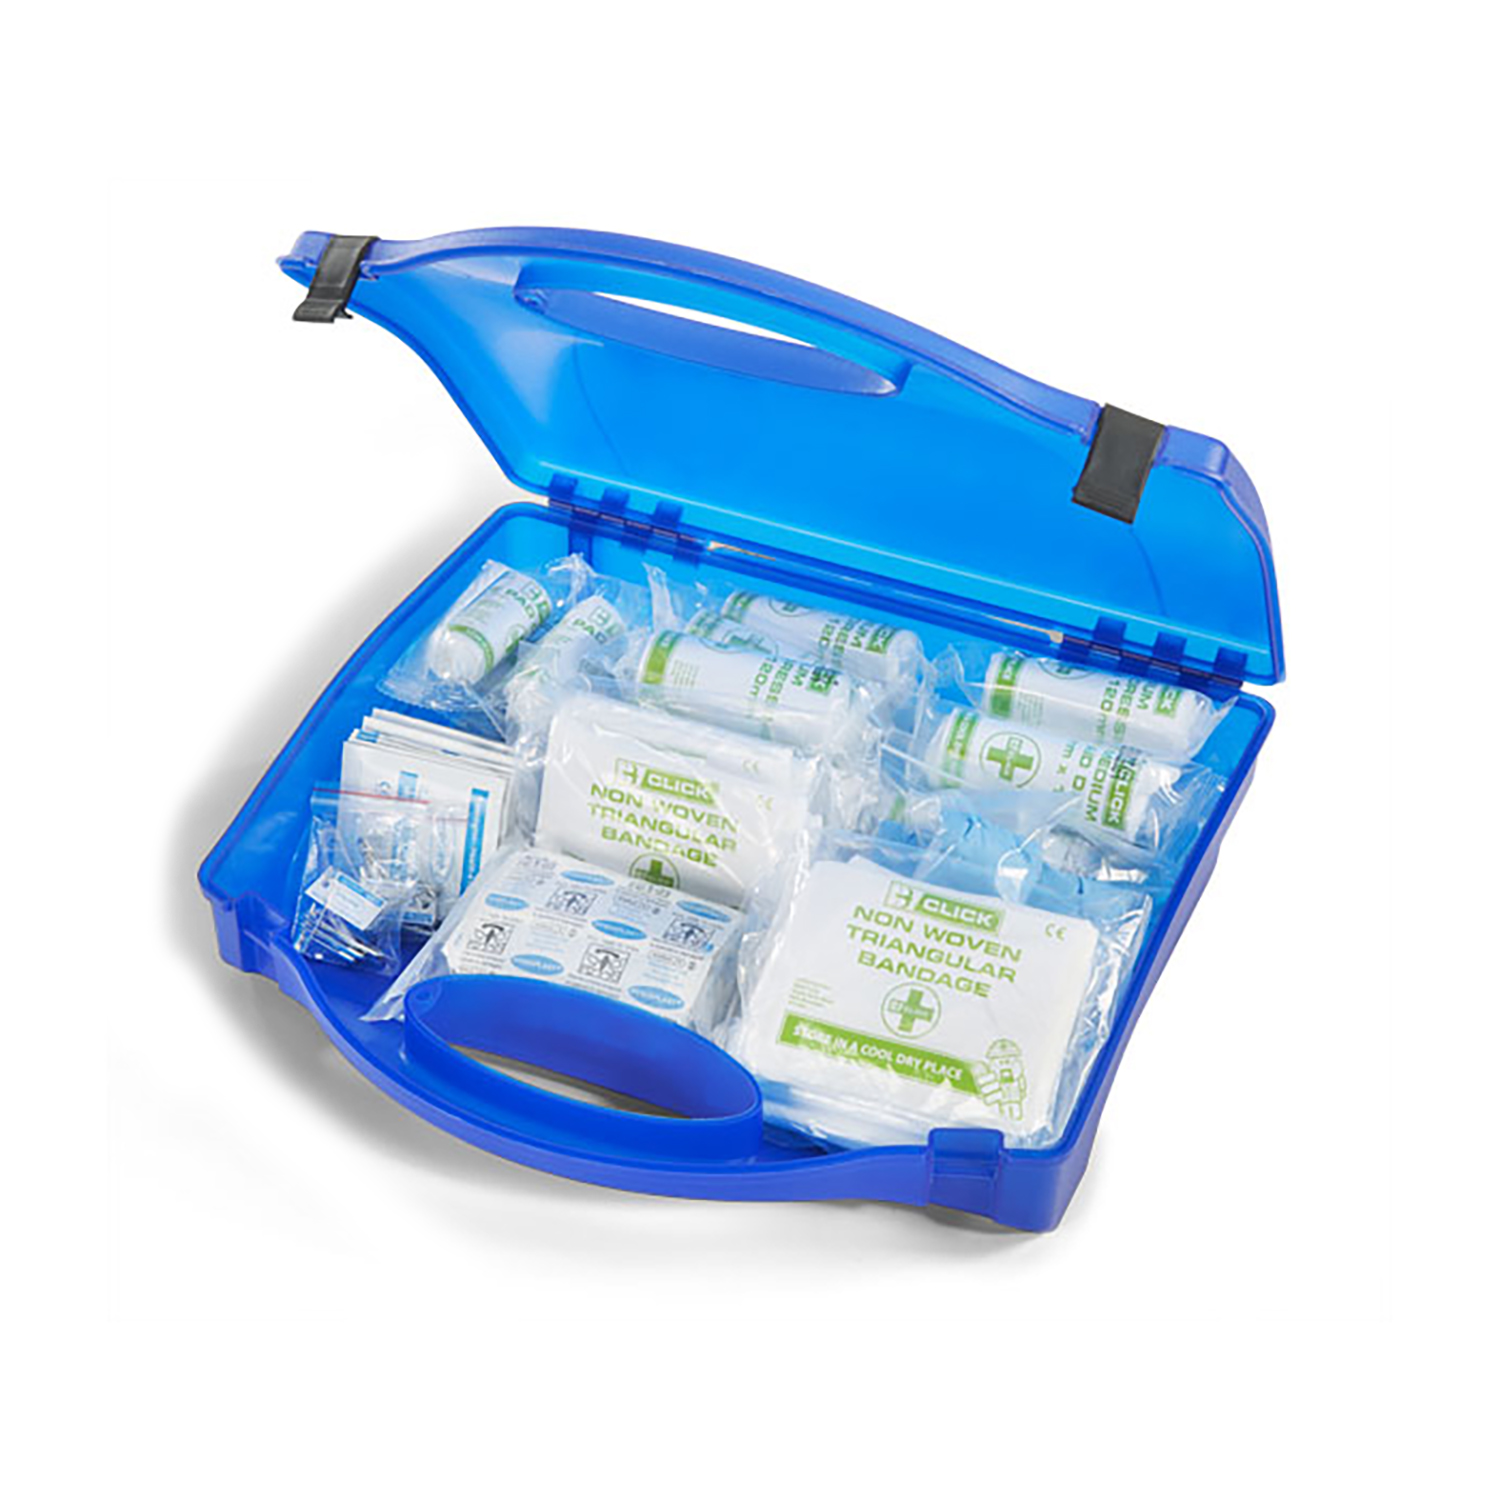 5 Star Facilities First Aid BSI Catering Kit Medium